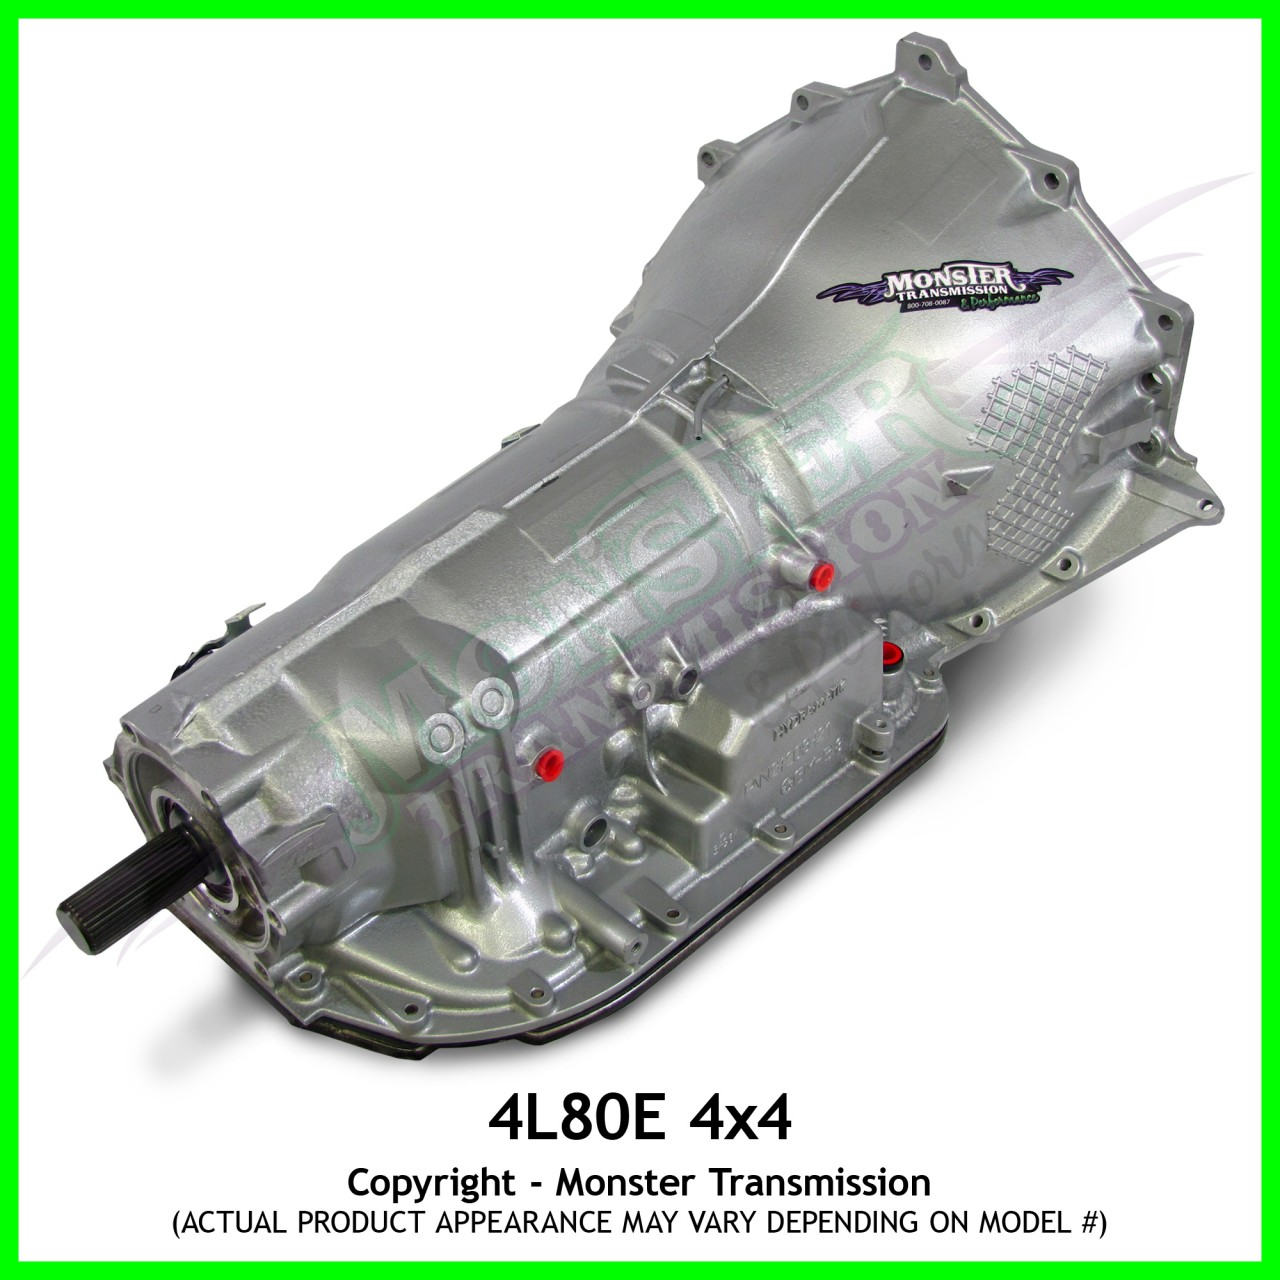 4l80e Transmission 4wd 4x4 4l80 E Heavy Duty 2003 Gmc Transfer Case Identification Rebuild Monster Free Shipping